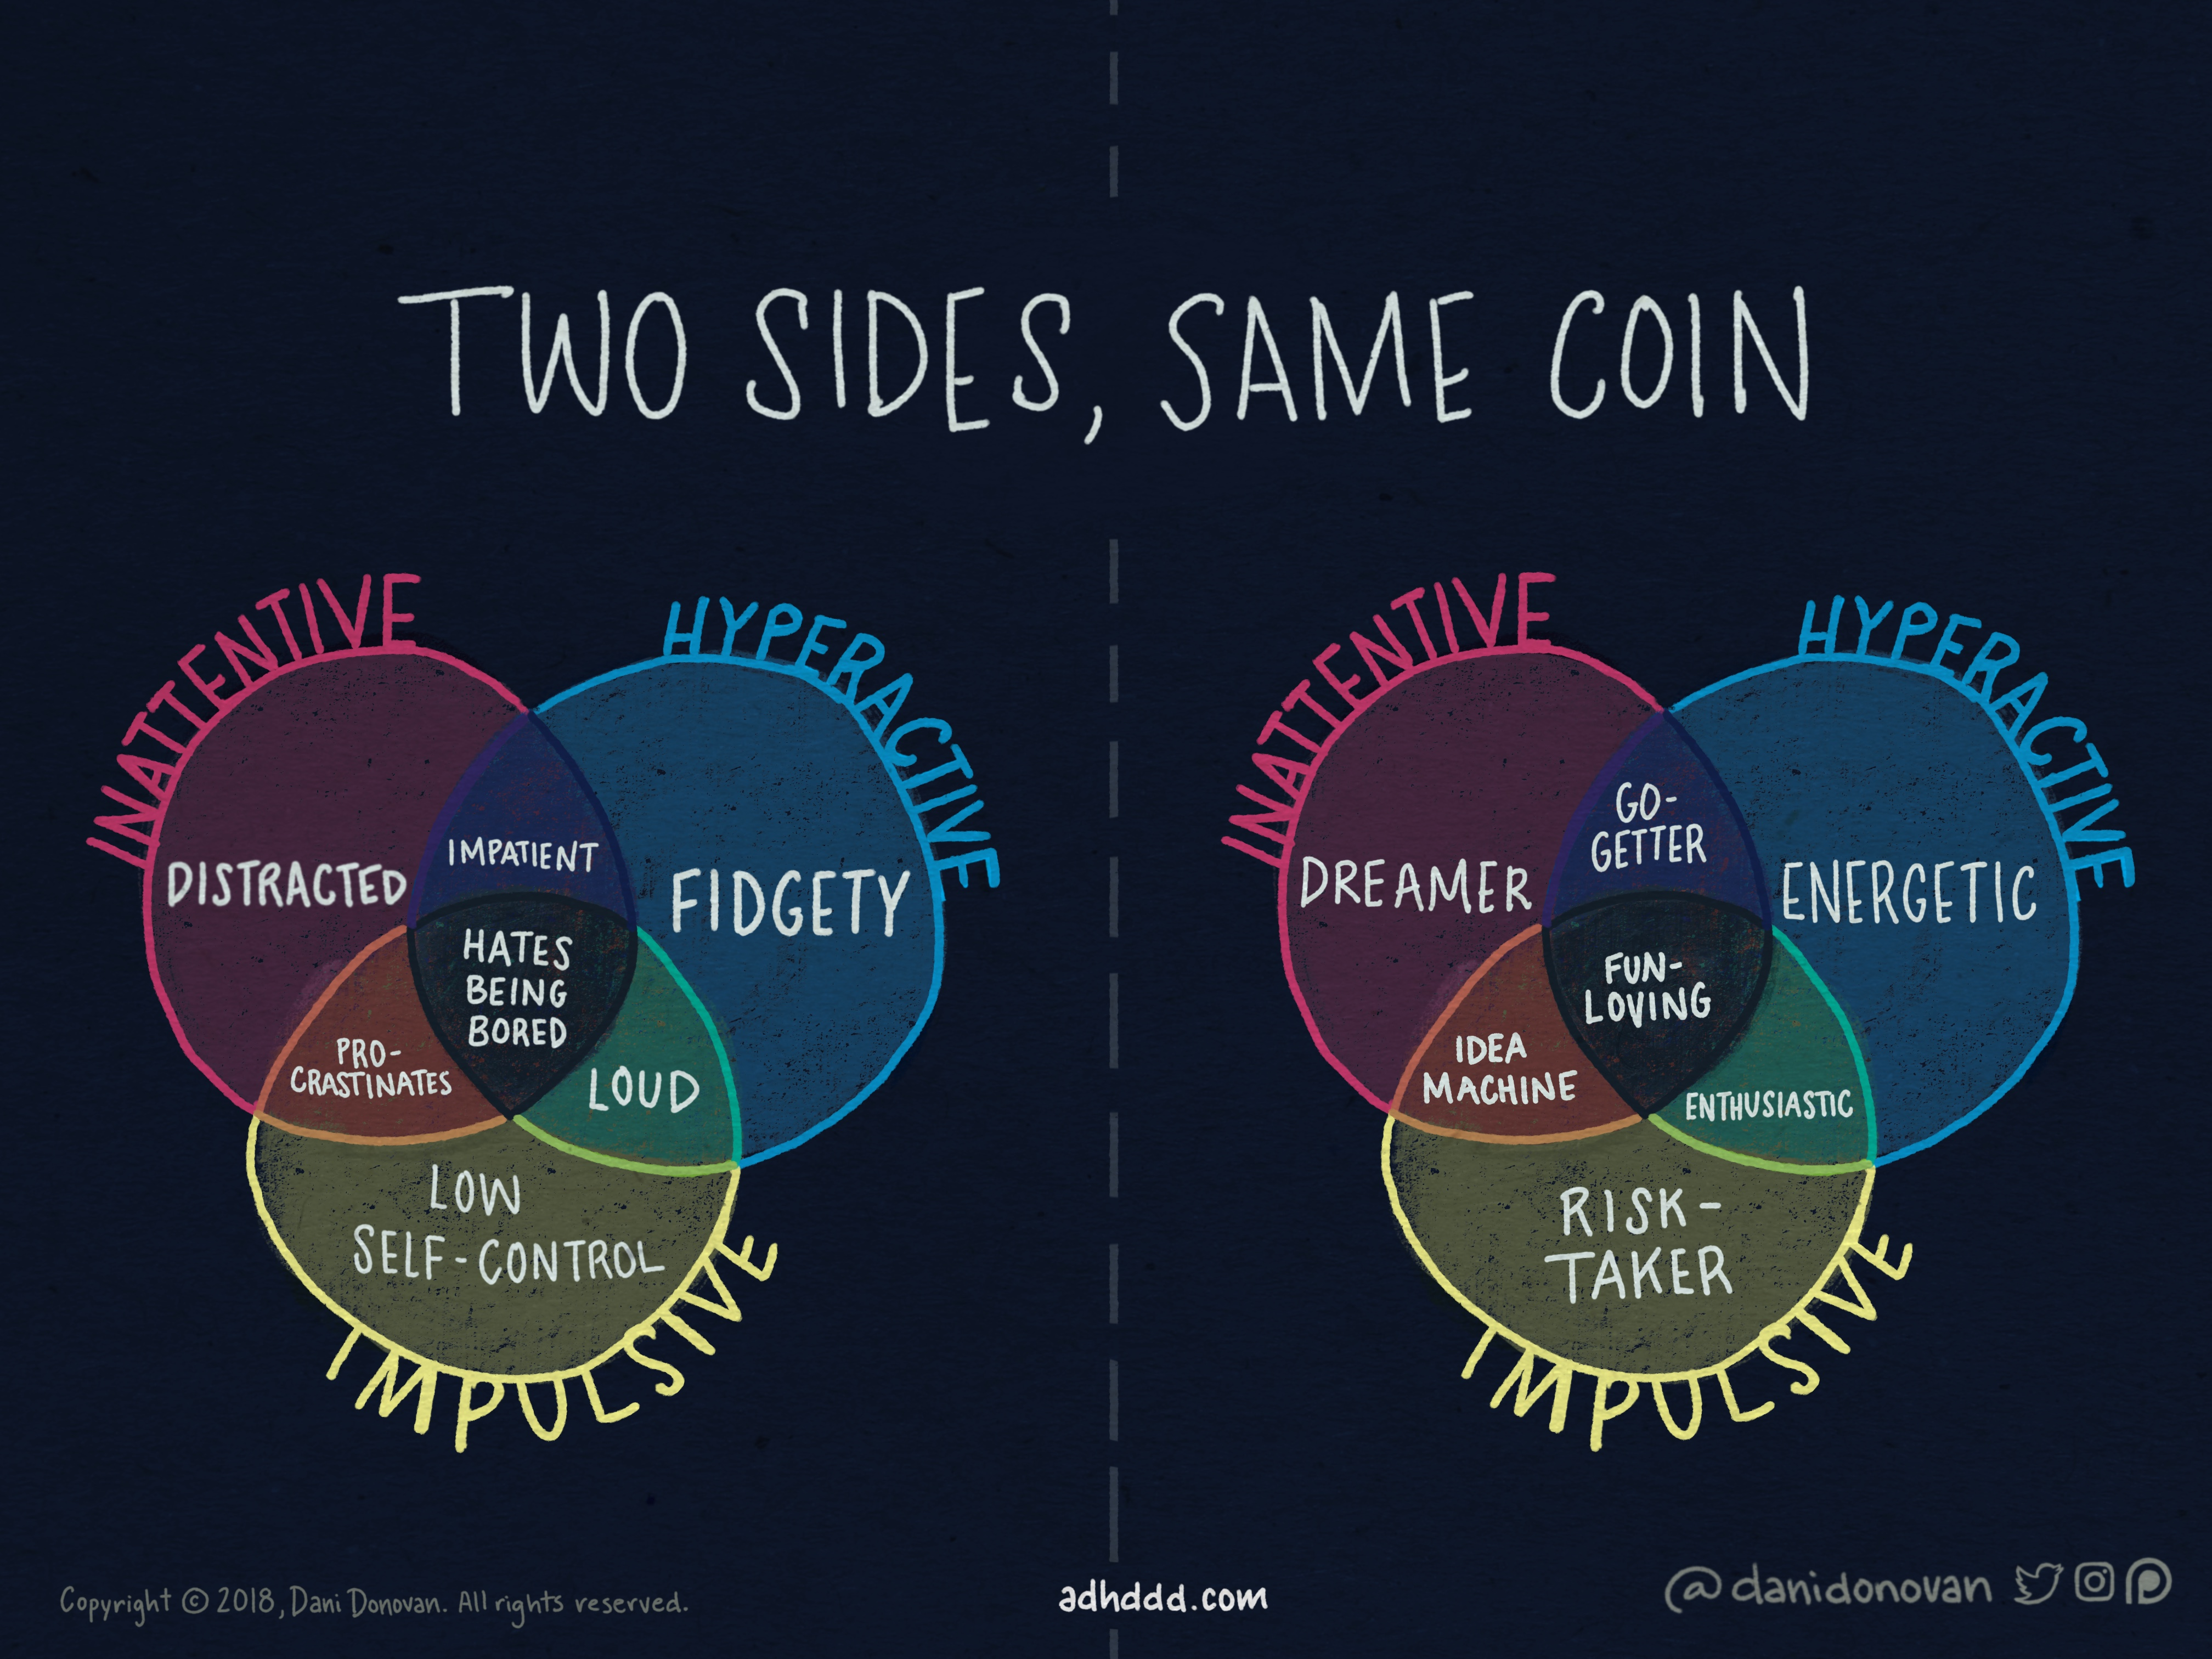 Two Sides, Same Coin illustration